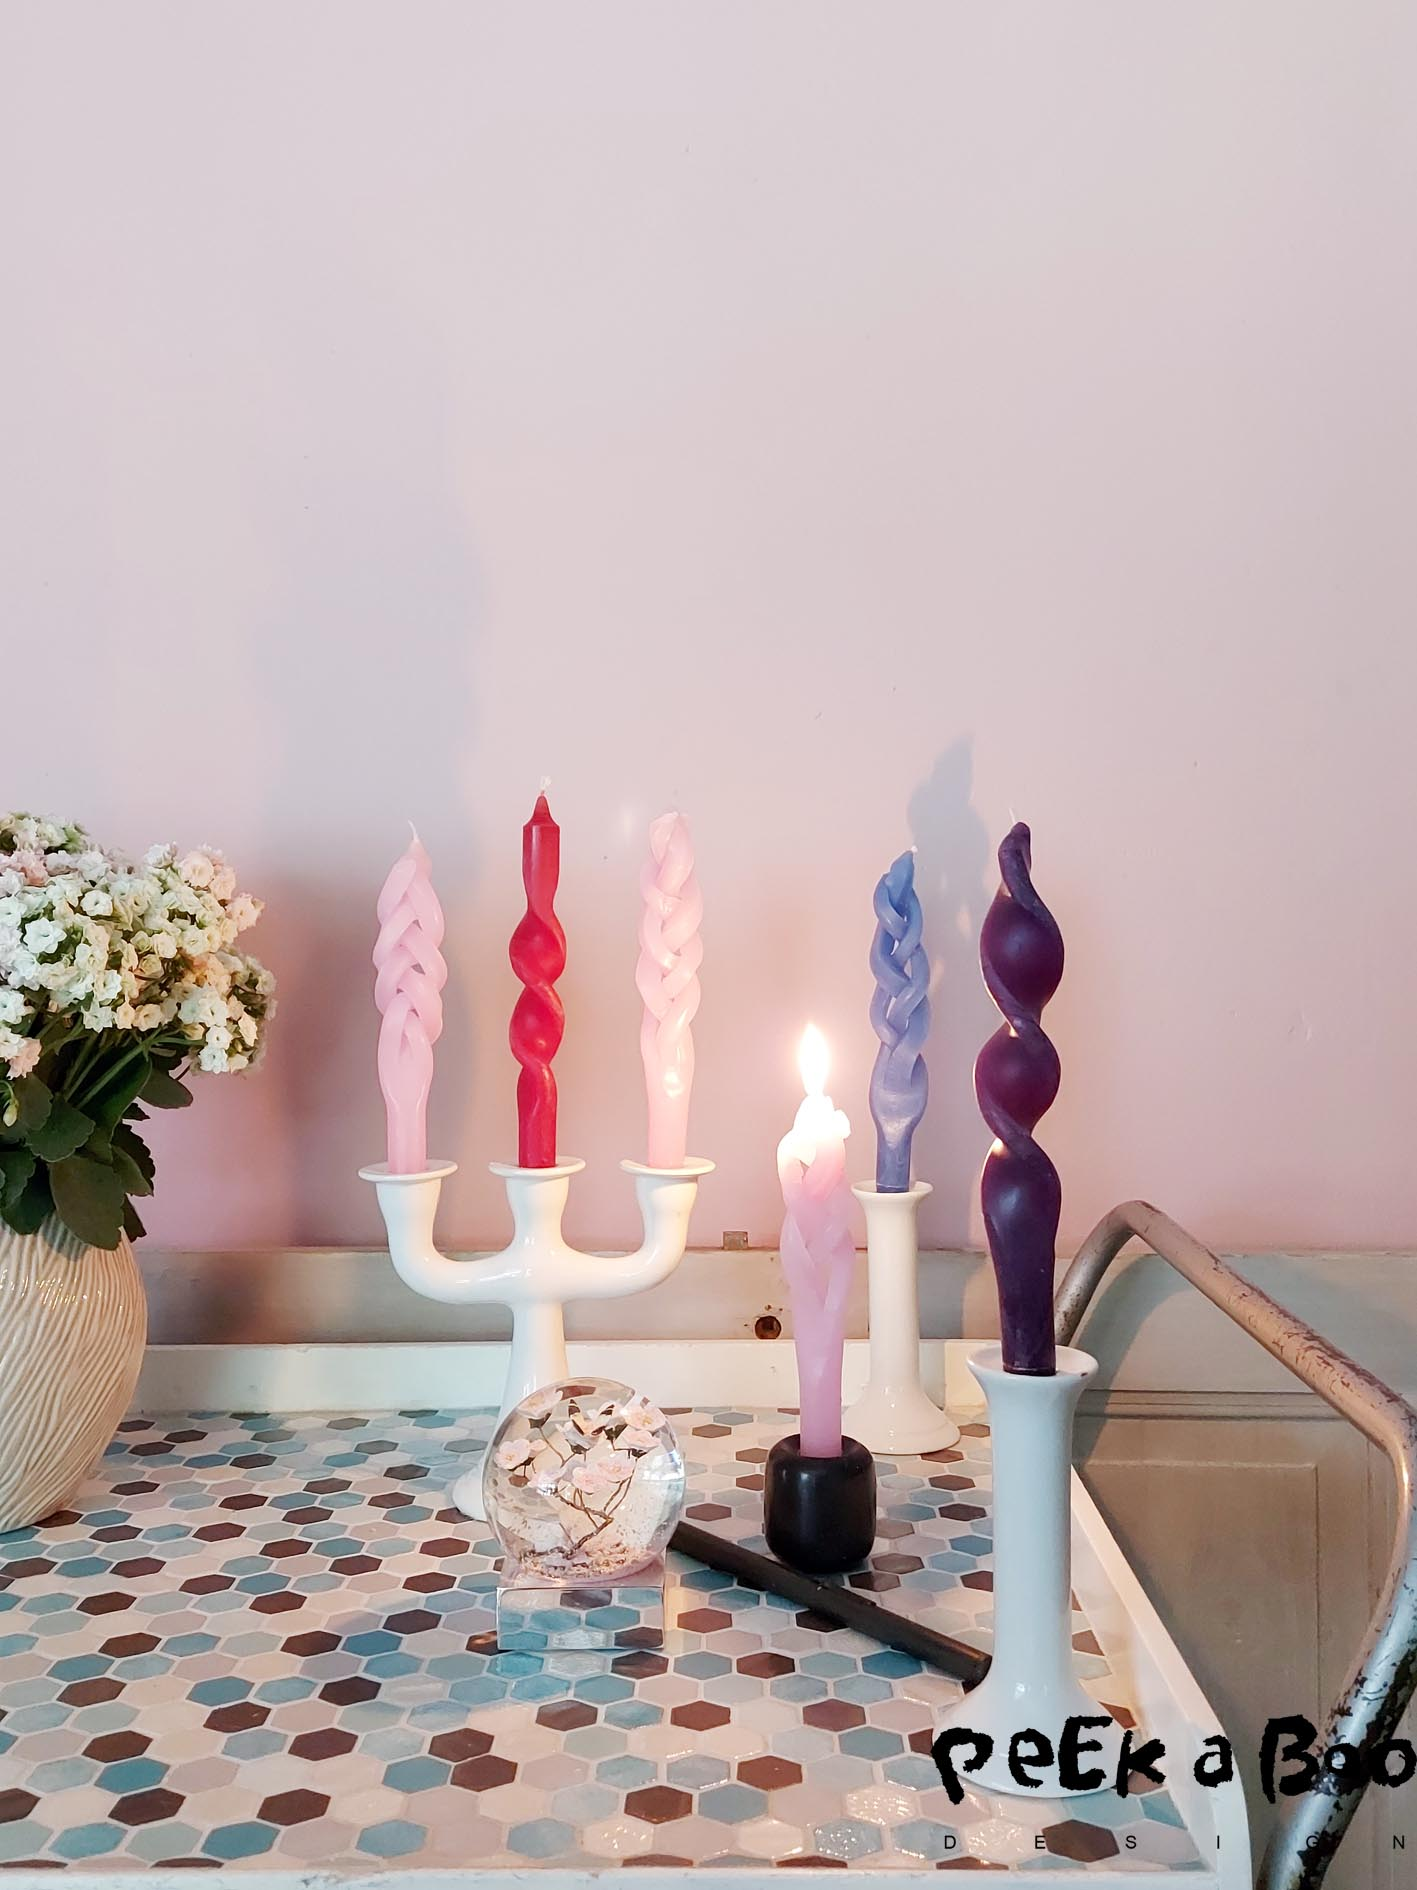 the easiest DIY ever. Upgrade your candles to look very exclusive and chic by twisting and braiding them. It only takes a few minuts.